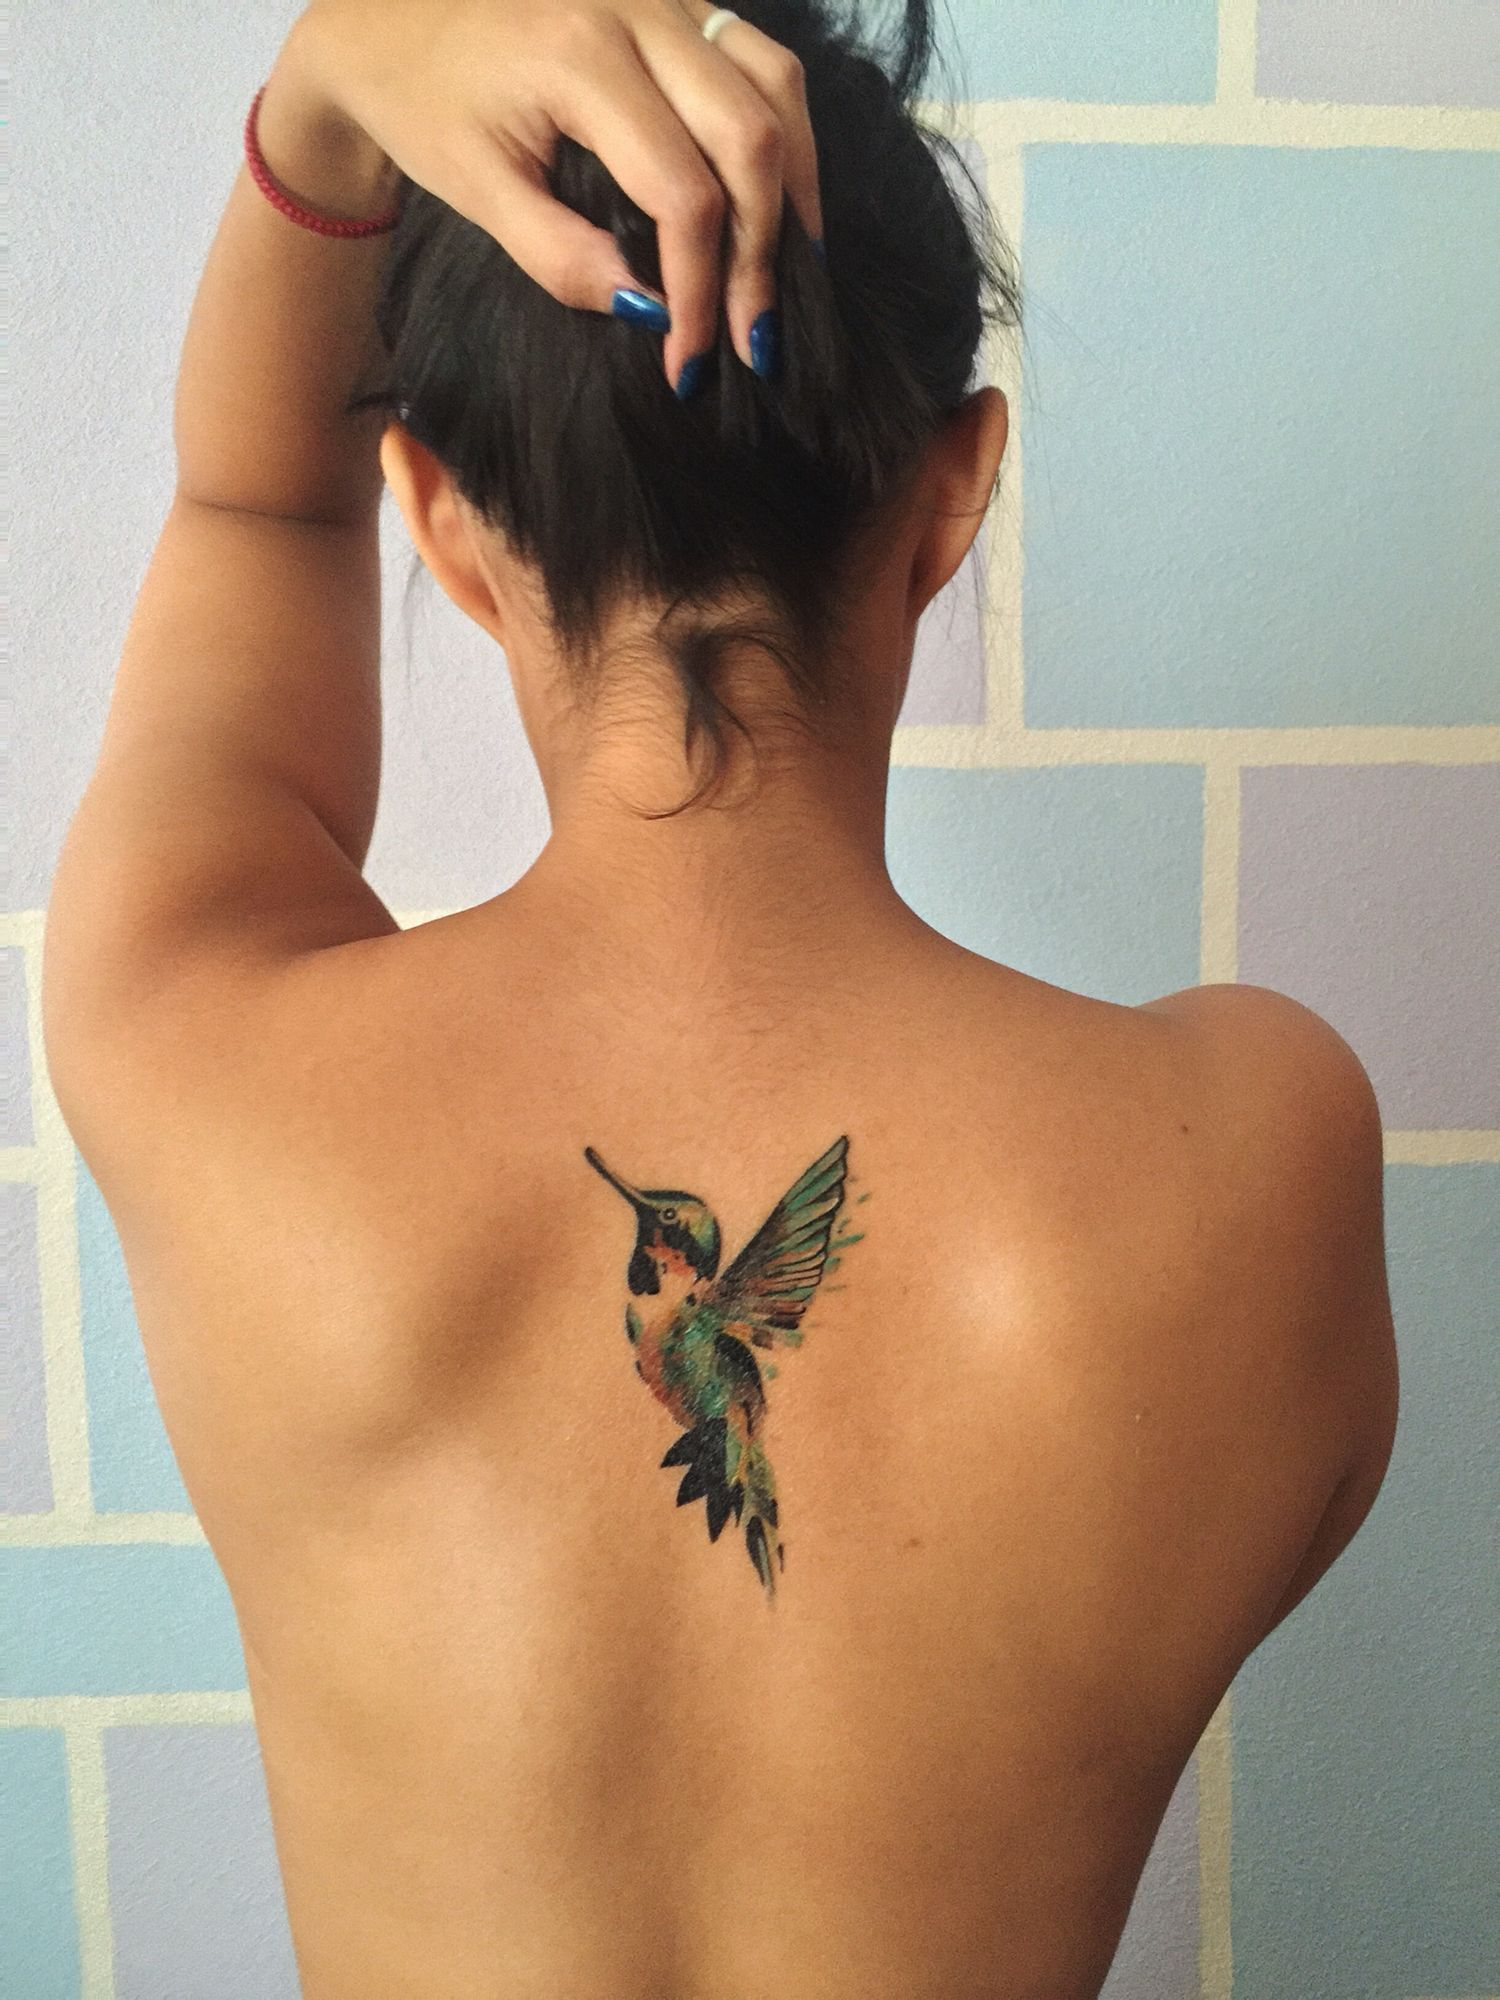 56dc9b0115be3 Humming bird color tattoo | Tattoos | Hummingbird tattoo, Tattoos ...